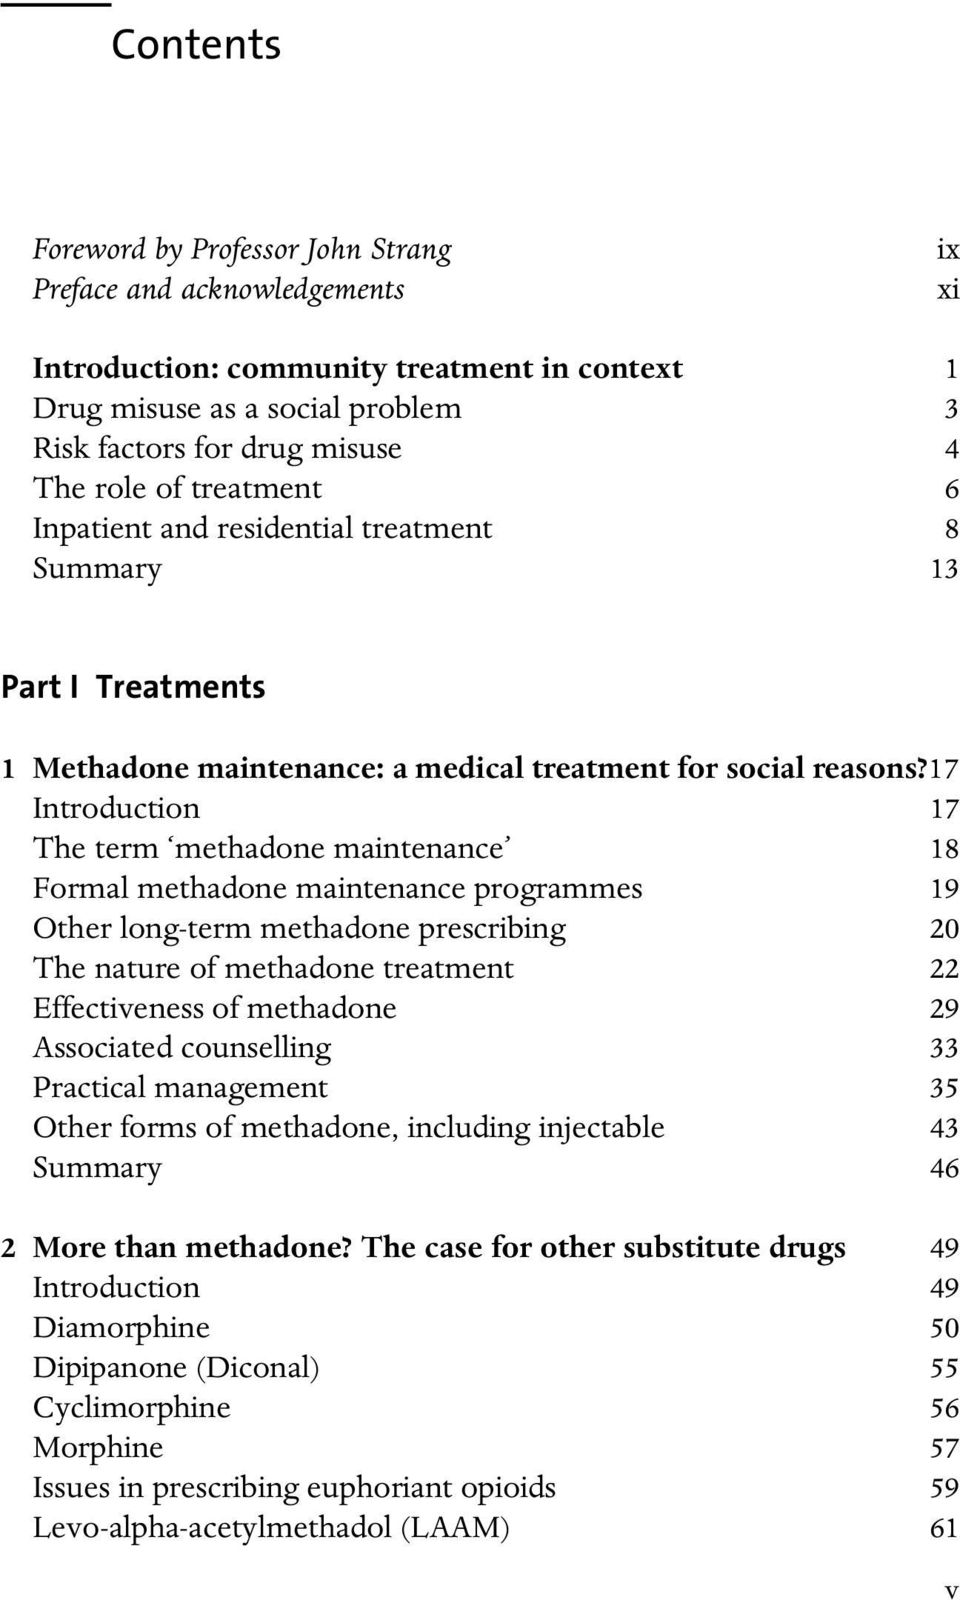 17 Introduction 17 The term methadone maintenance 18 Formal methadone maintenance programmes 19 Other long-term methadone prescribing 20 The nature of methadone treatment 22 Effectiveness of